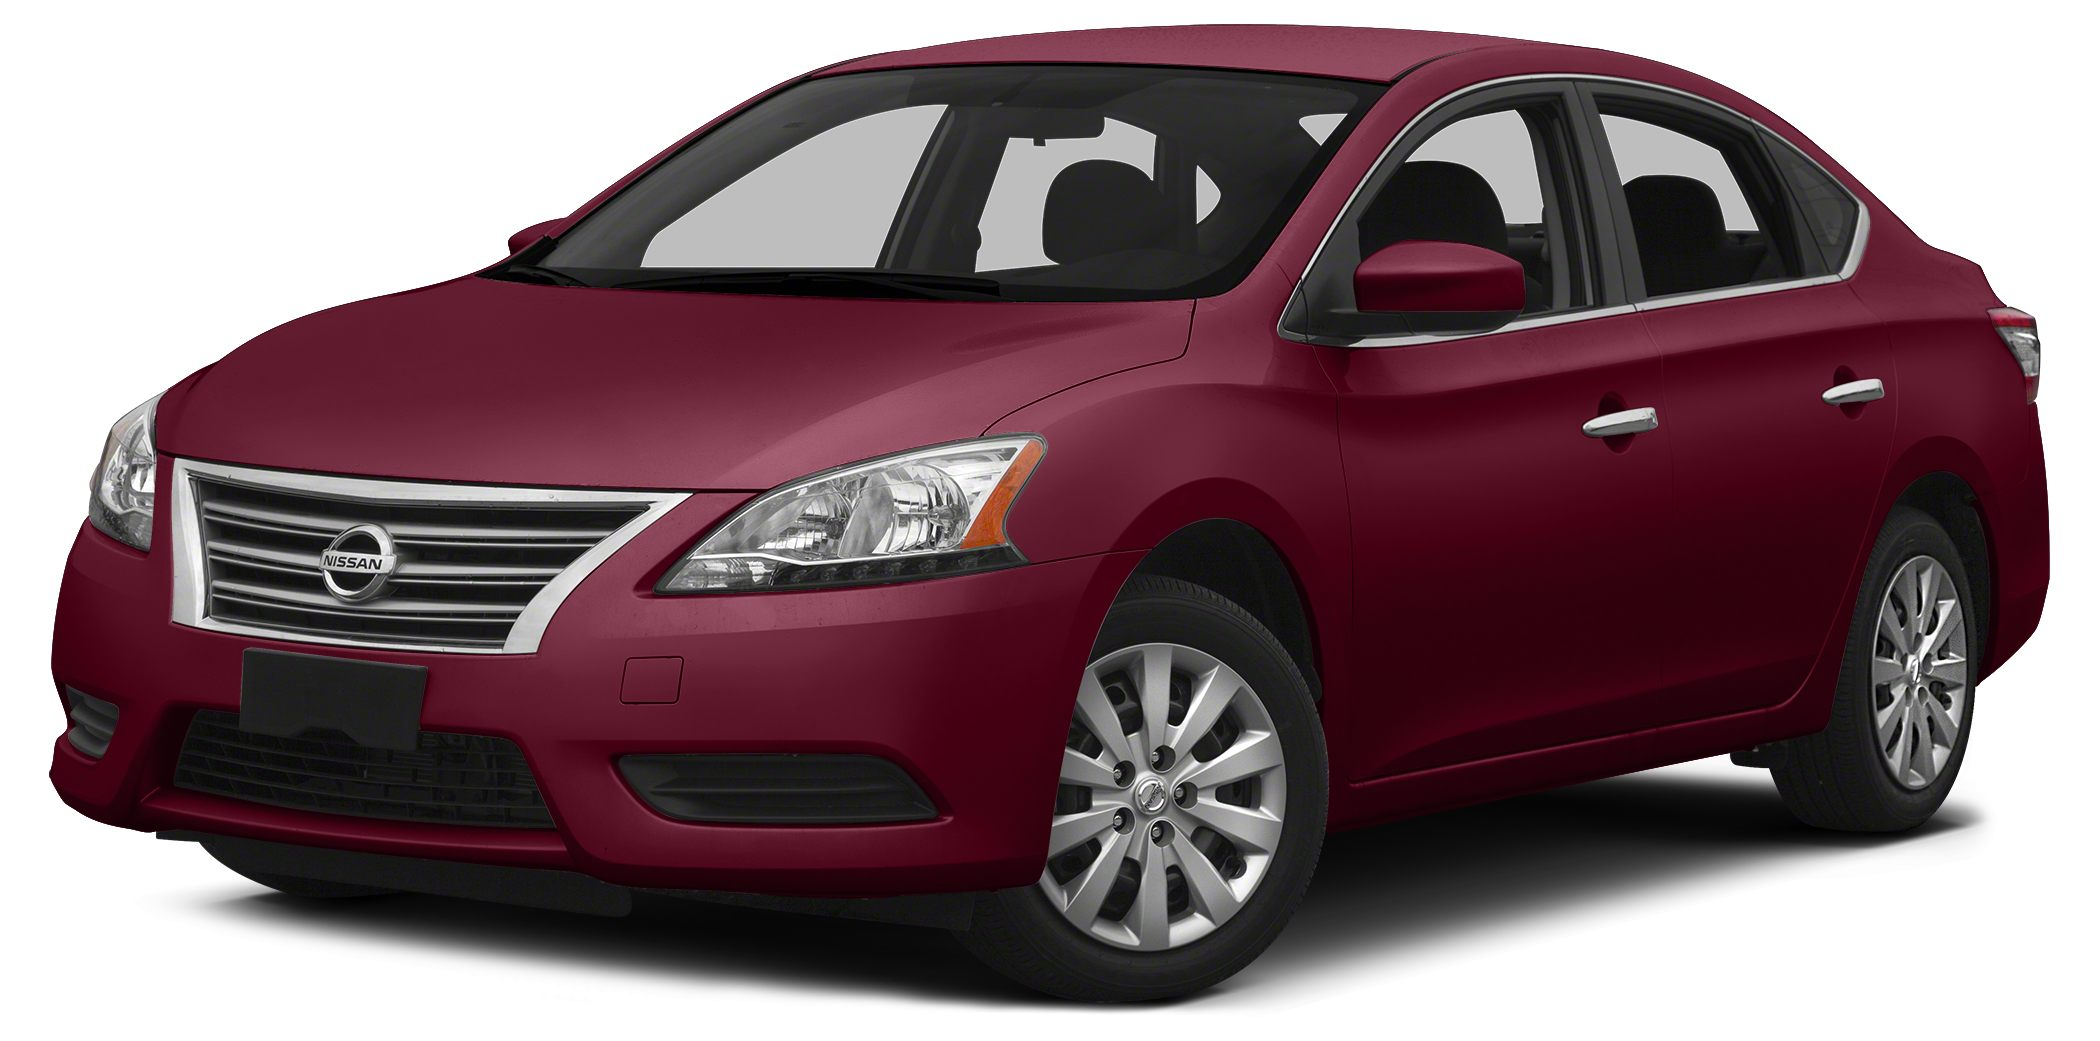 2013 Nissan Sentra SV Miles 61576Color Red Brick Stock PN16267A VIN 3N1AB7AP2DL722830